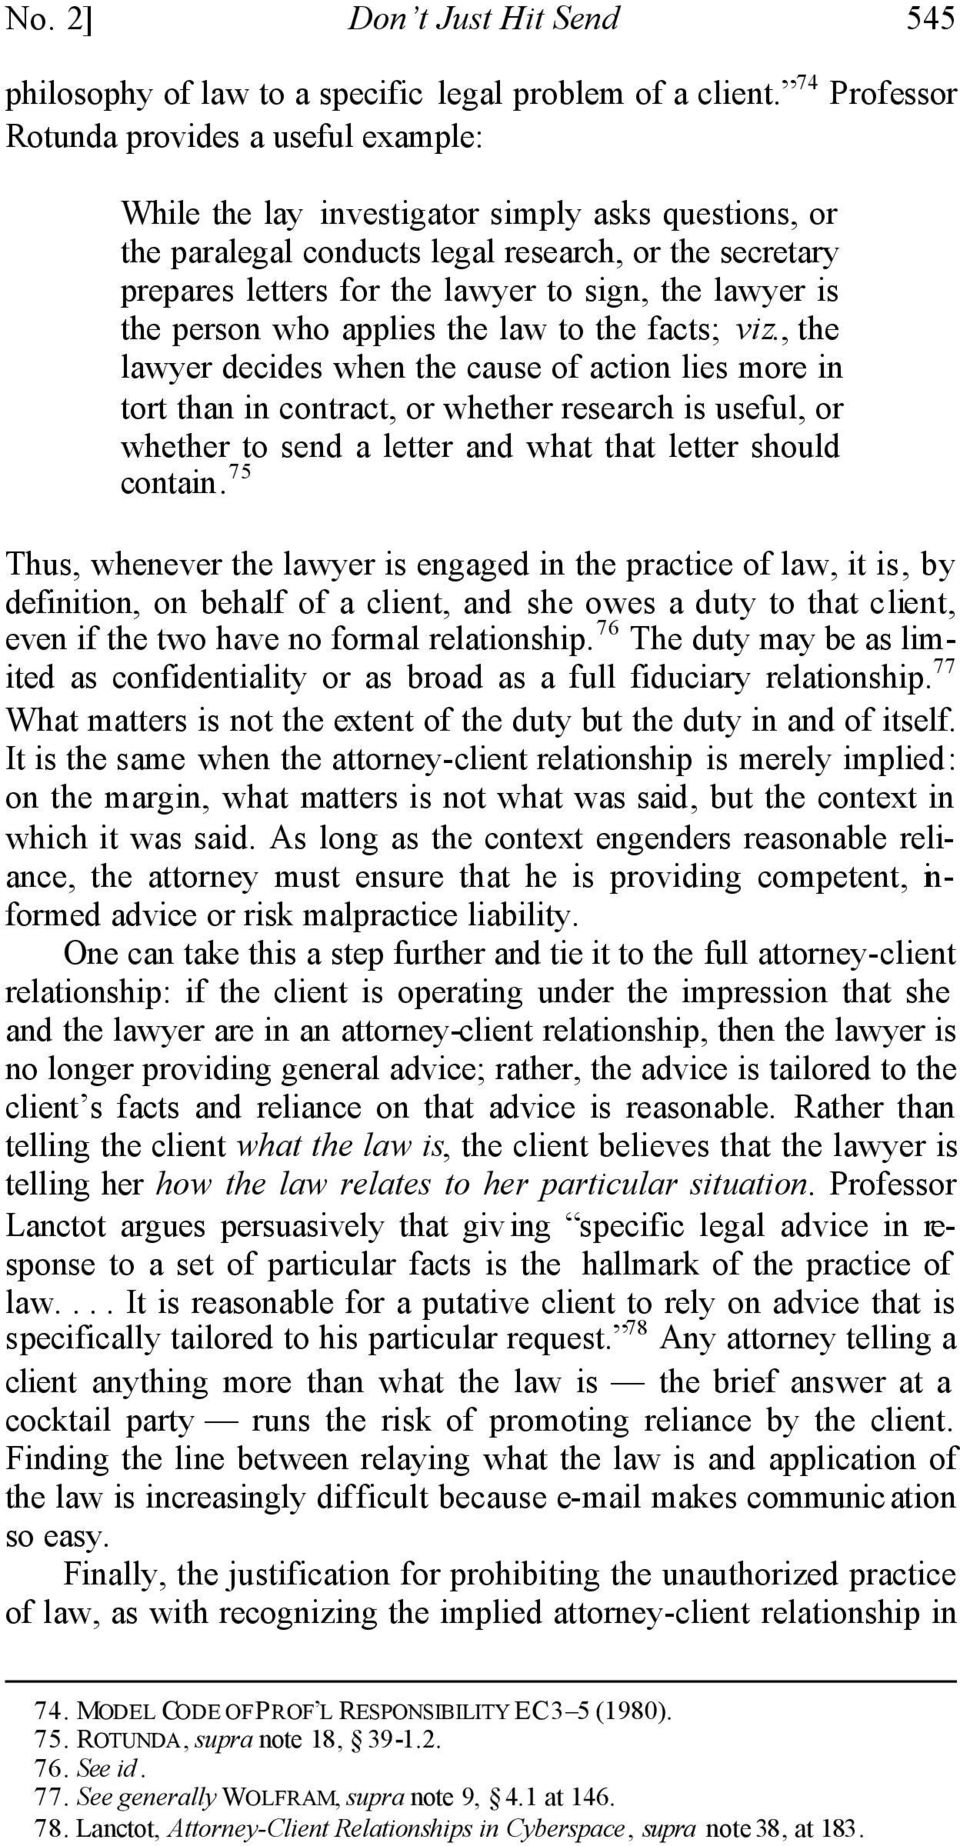 the lawyer is the person who applies the law to the facts; viz.